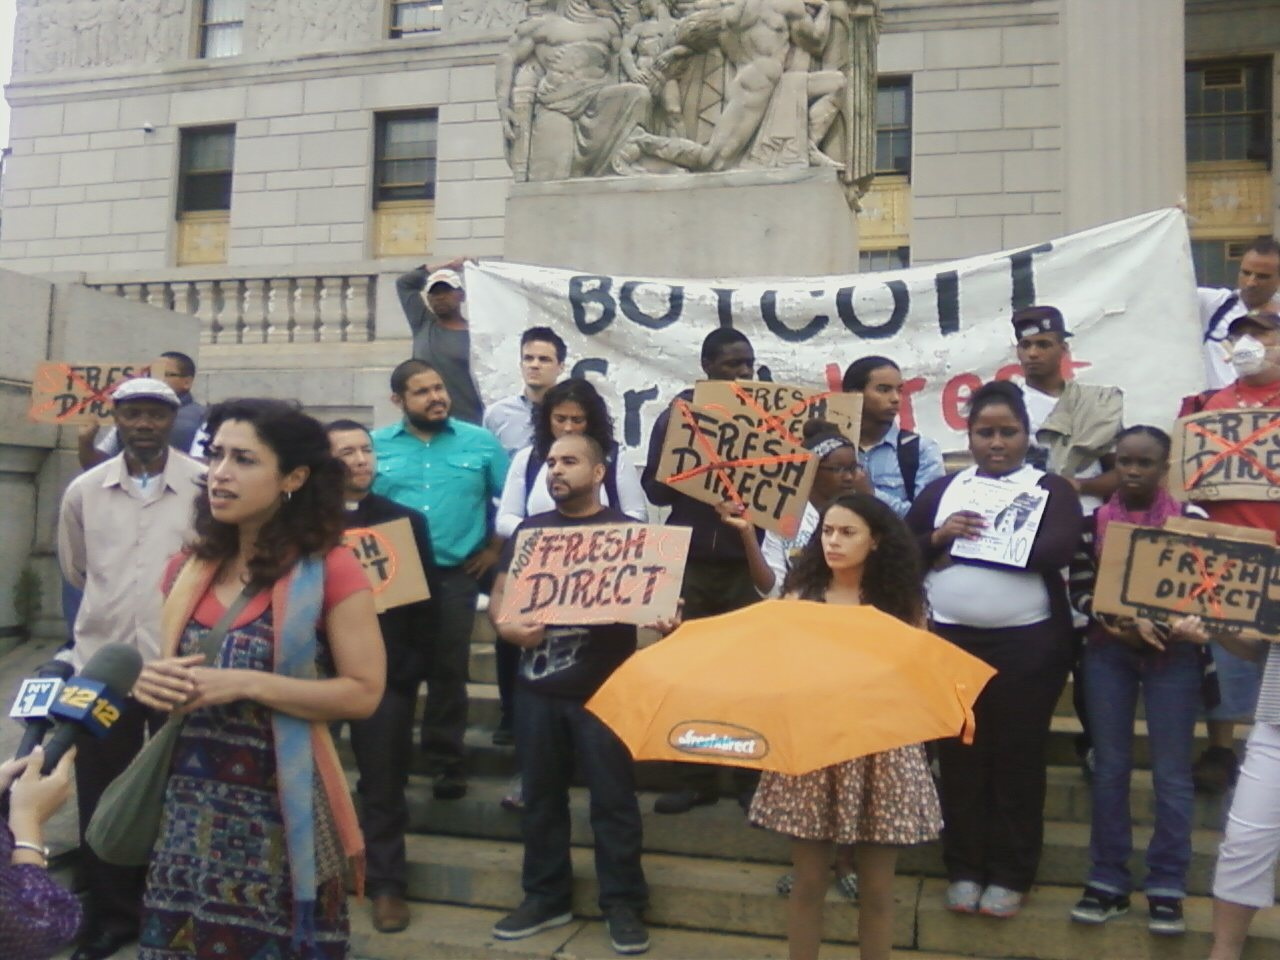 Mott Haven resident Libertad Guerra was one of several Mott Haven residents who applauded a lawsuit against FreshDirect in front of the Supreme Court Building on the Grand Concourse on June 13.